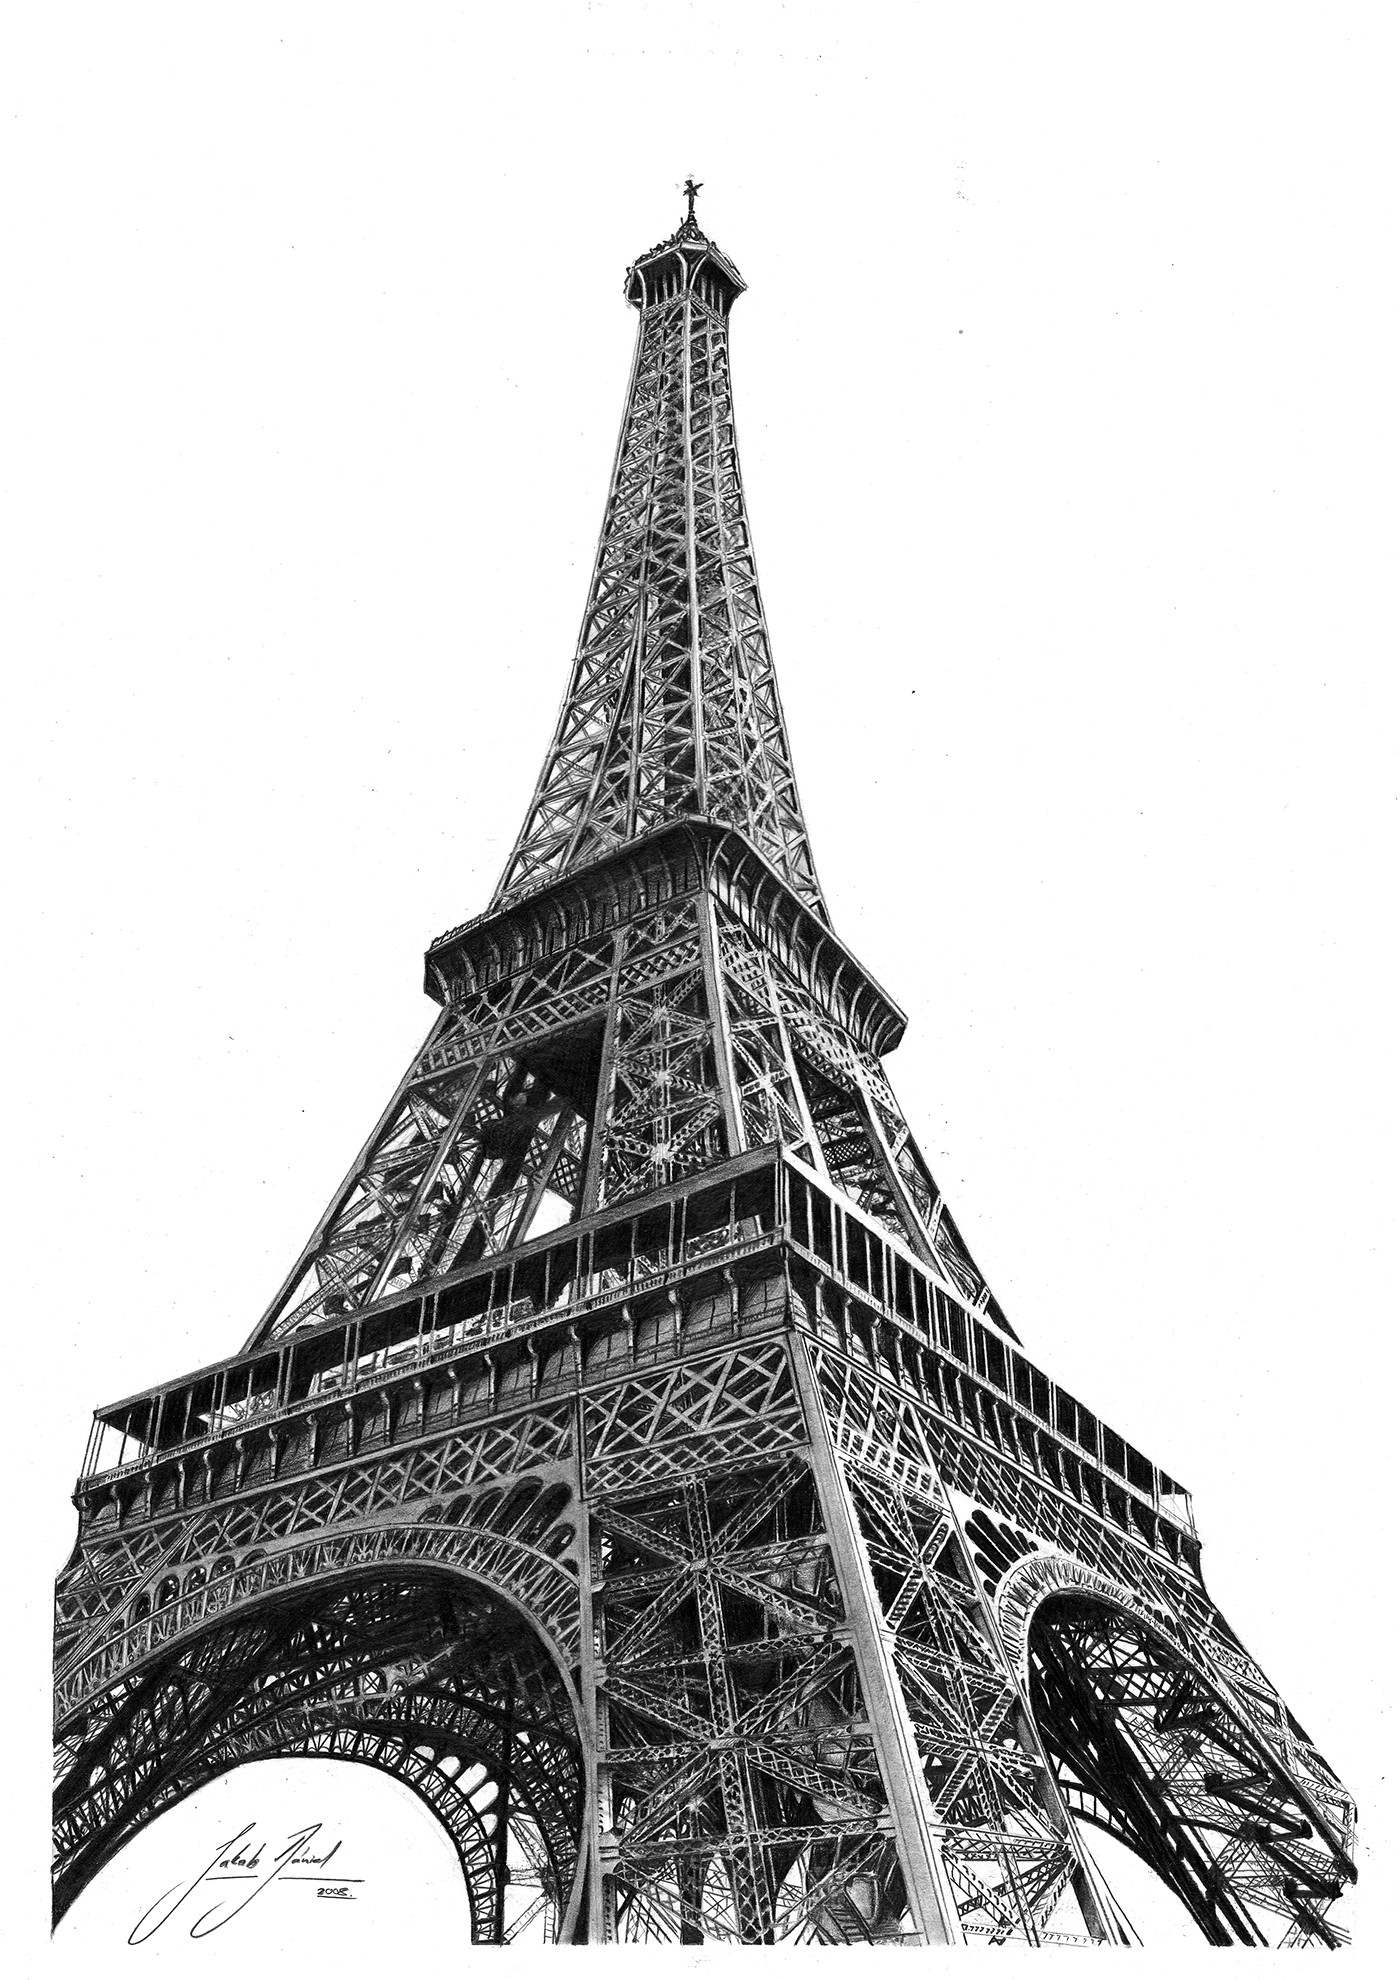 eifell tower drawing learn to draw a cool easy eiffel tower drawing sketch in drawing tower eifell